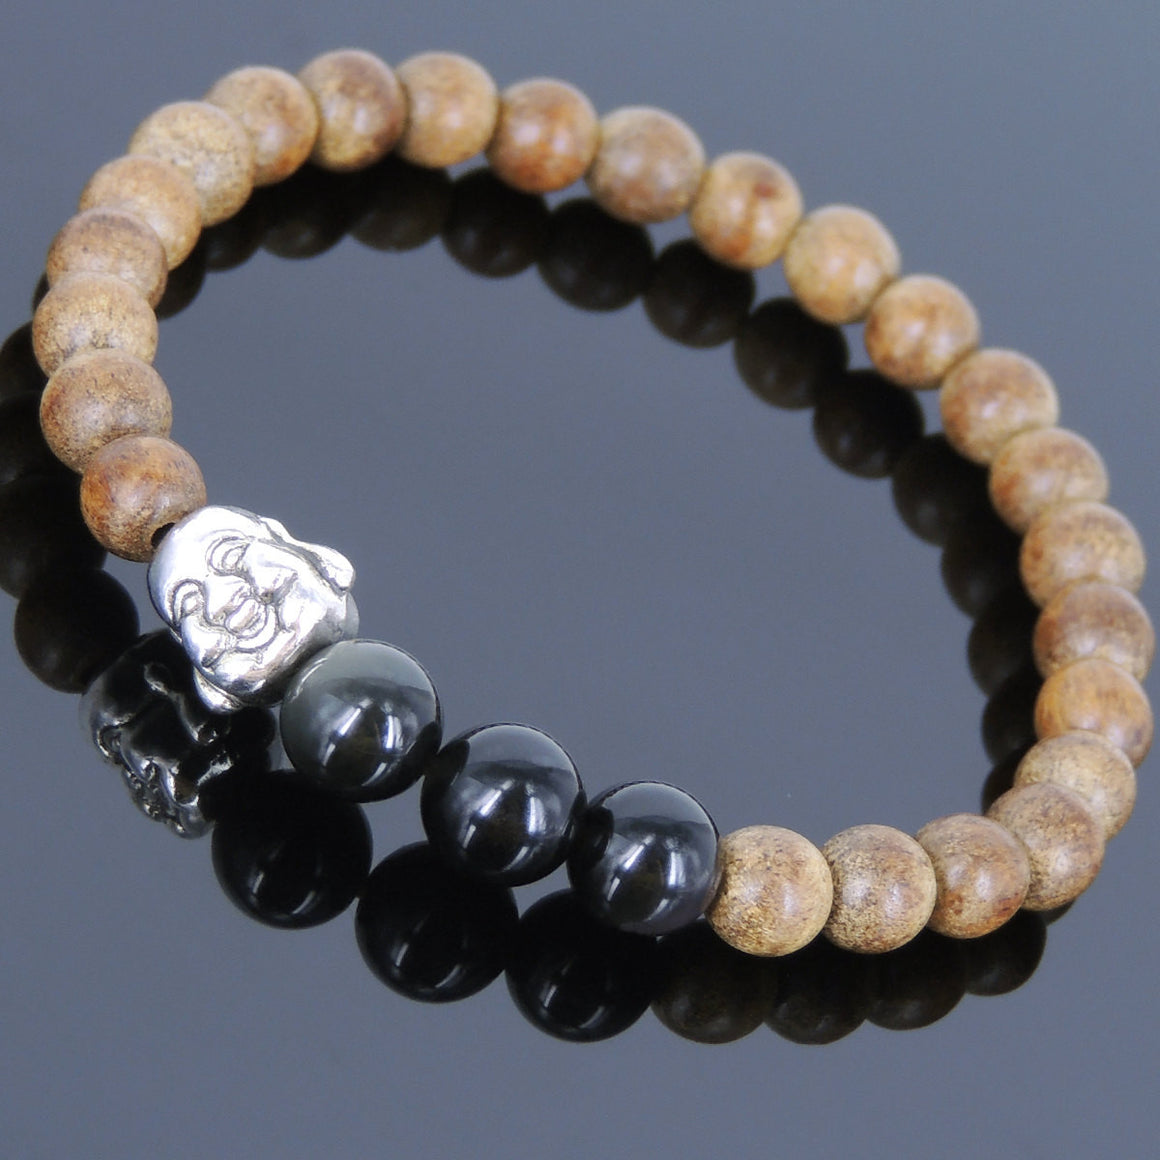 Meditation Agarwood & Black Obsidian Gemstone Bracelet with Tibetan Silver Smiling Buddha Bead - Handmade by Gem & Silver AWB044